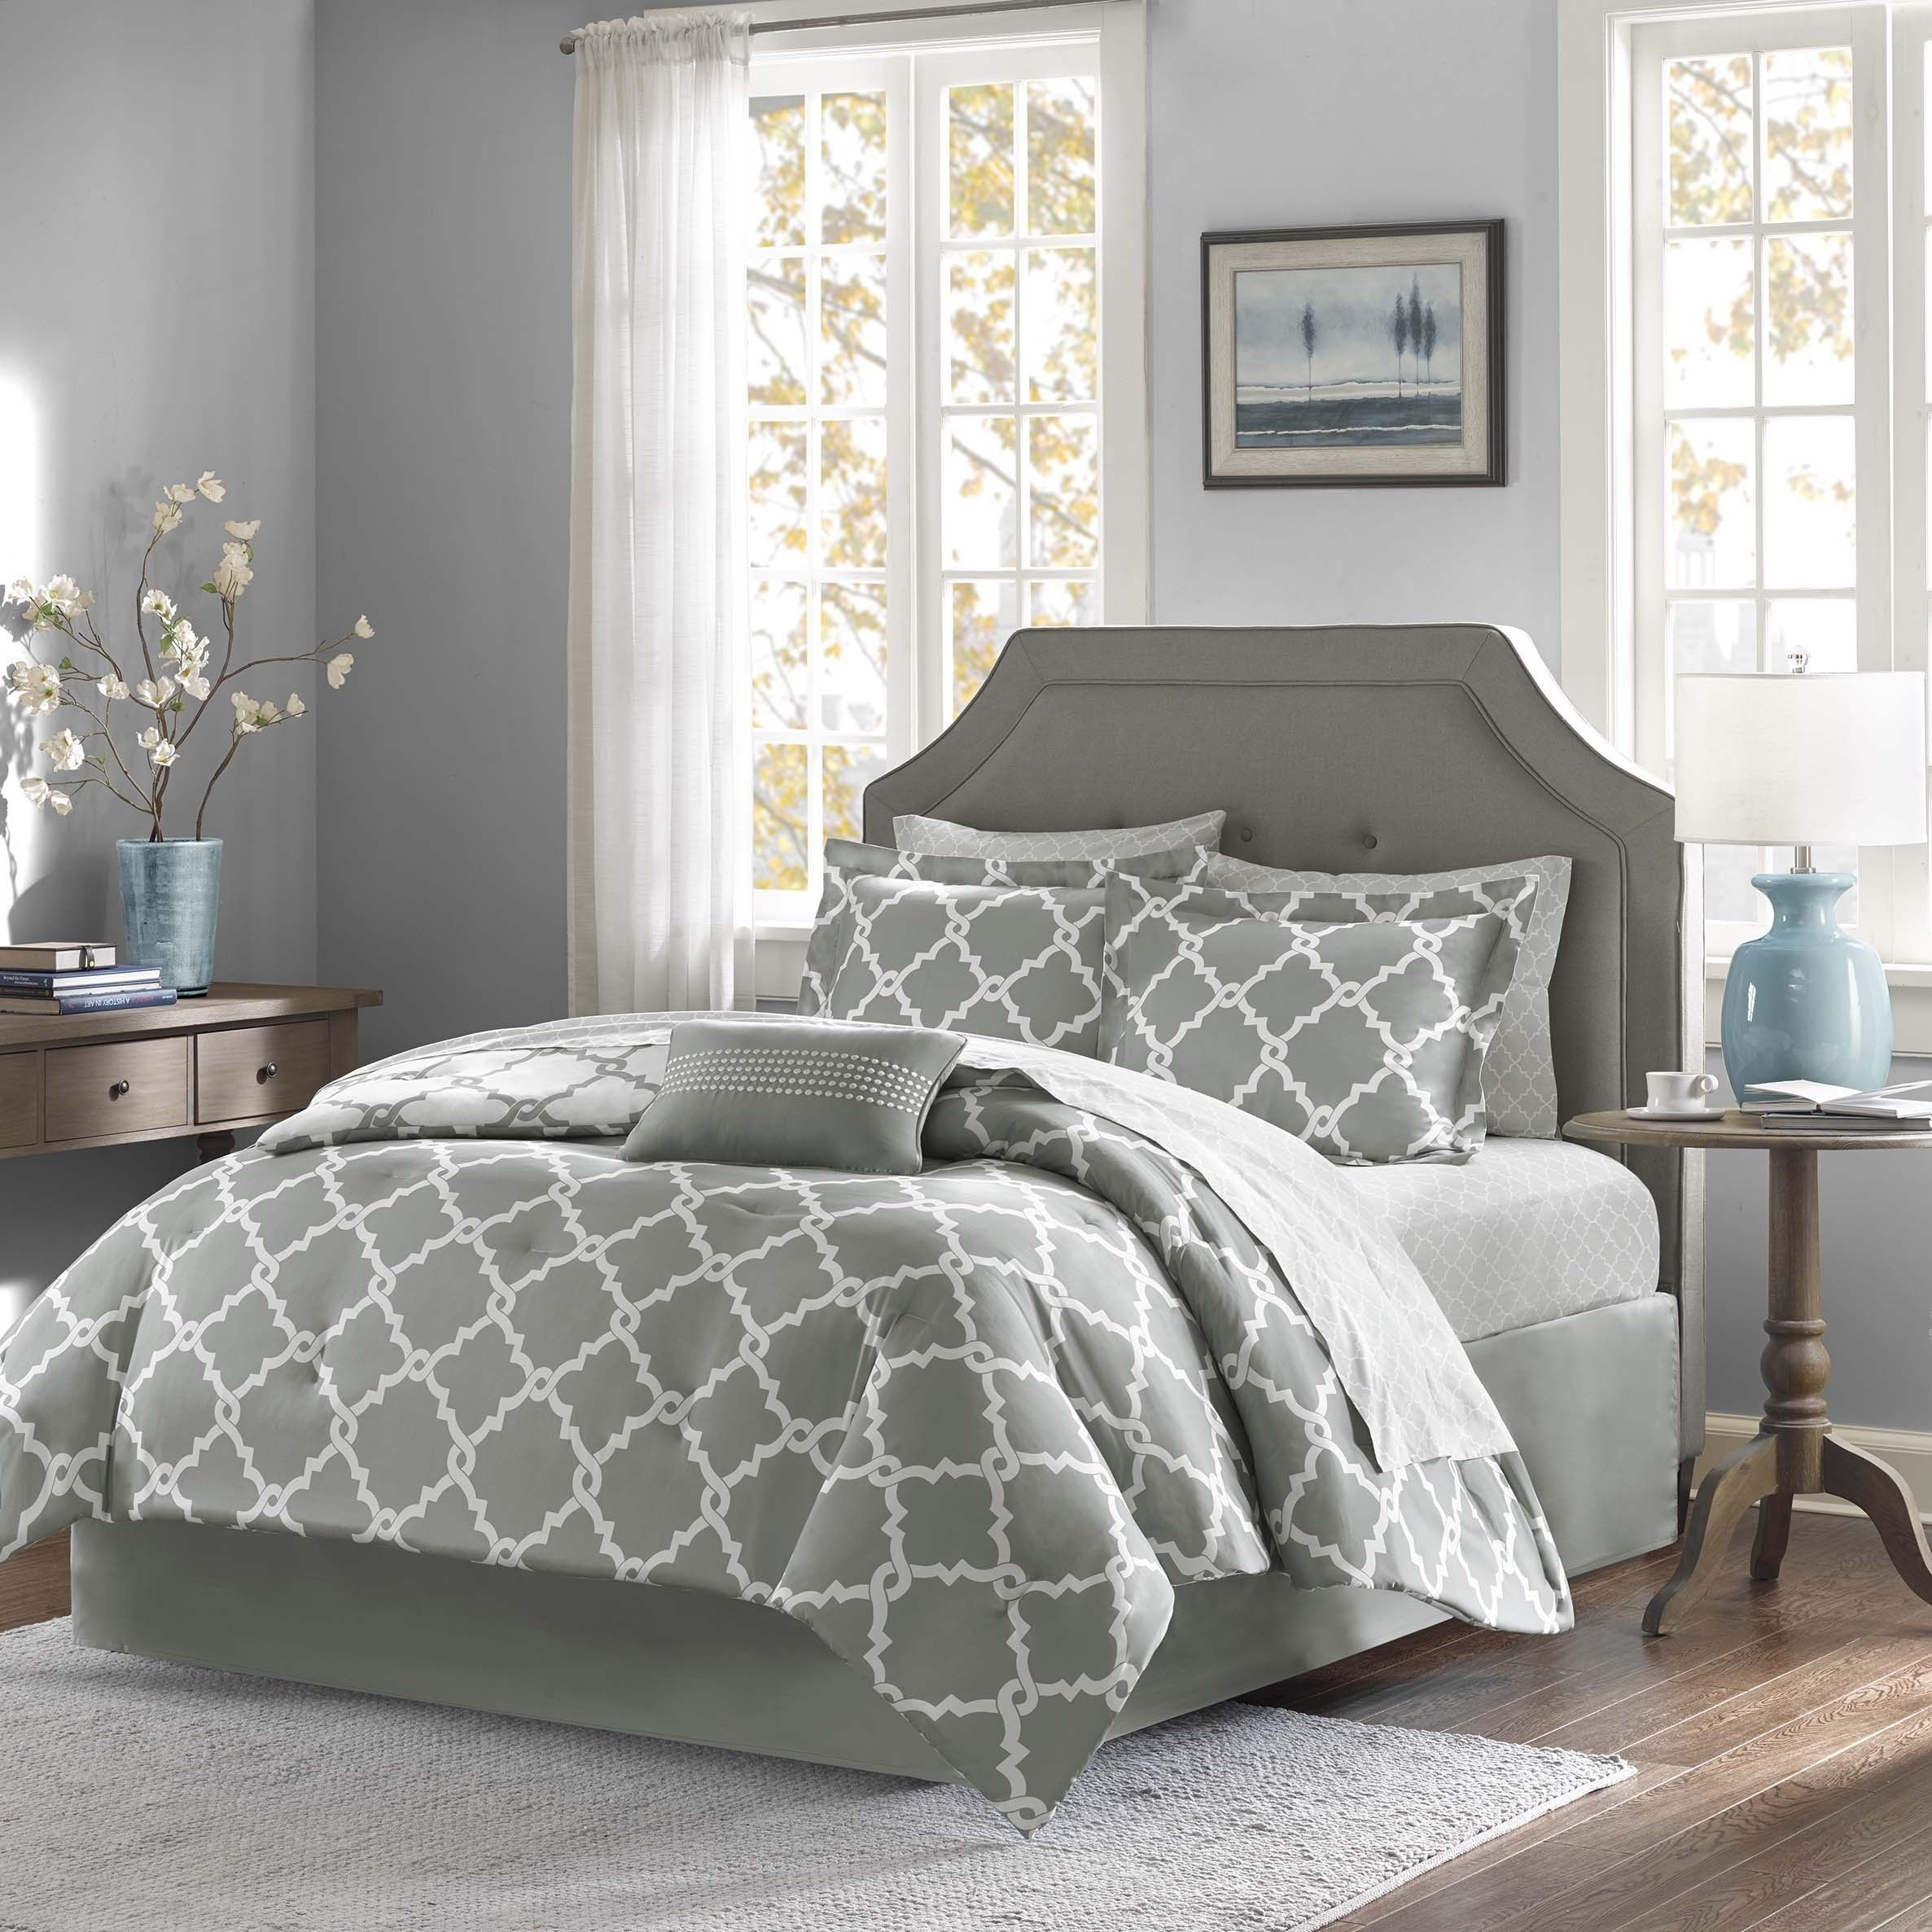 Madison Park Essentials Almaden Grey Trellis Pattern 9 Piece Bed in